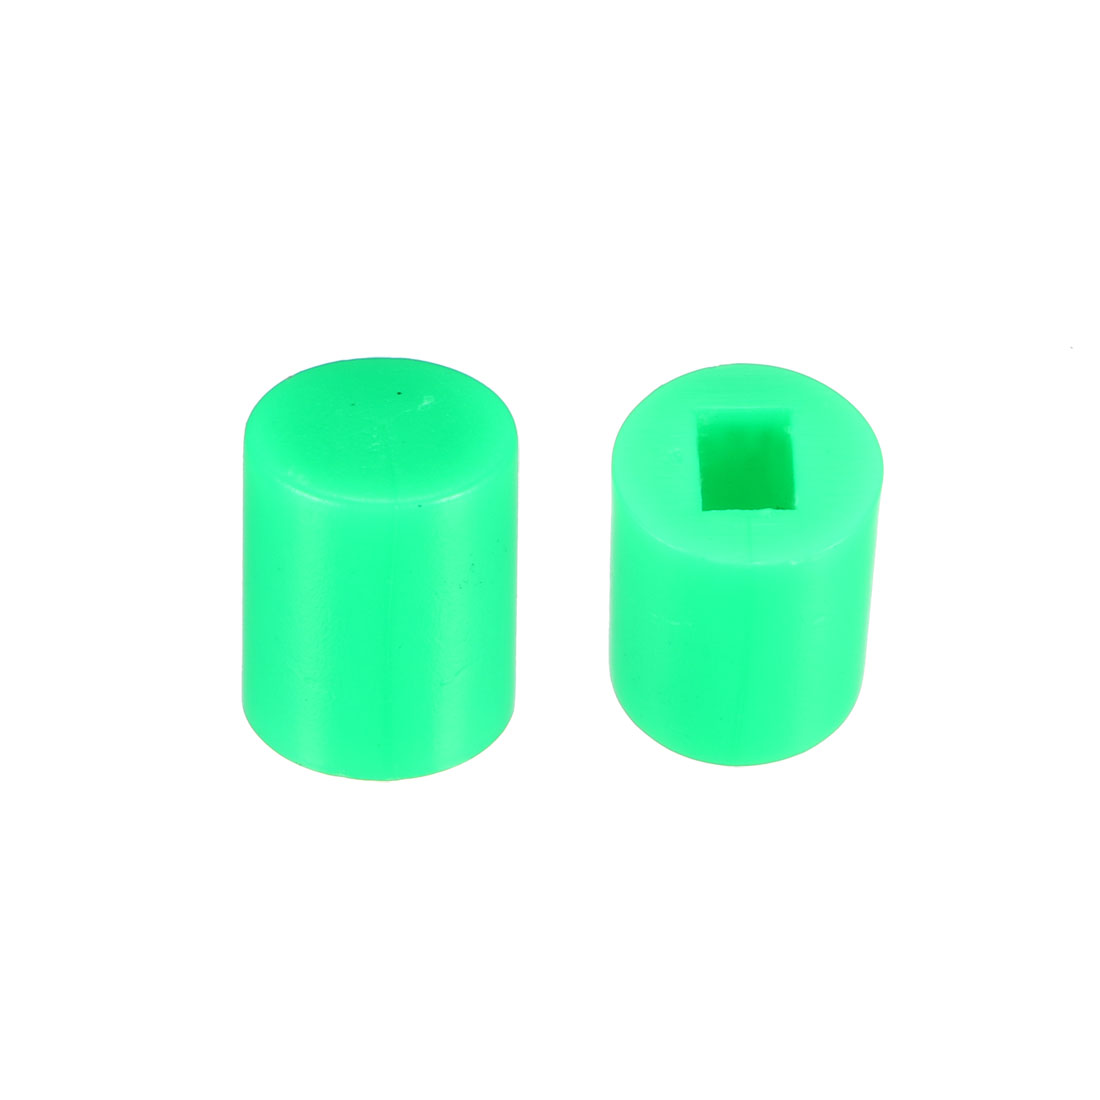 40Pcs Plastic 6x7mm Latching Pushbutton Tactile Switch Caps Cover Keycaps Green